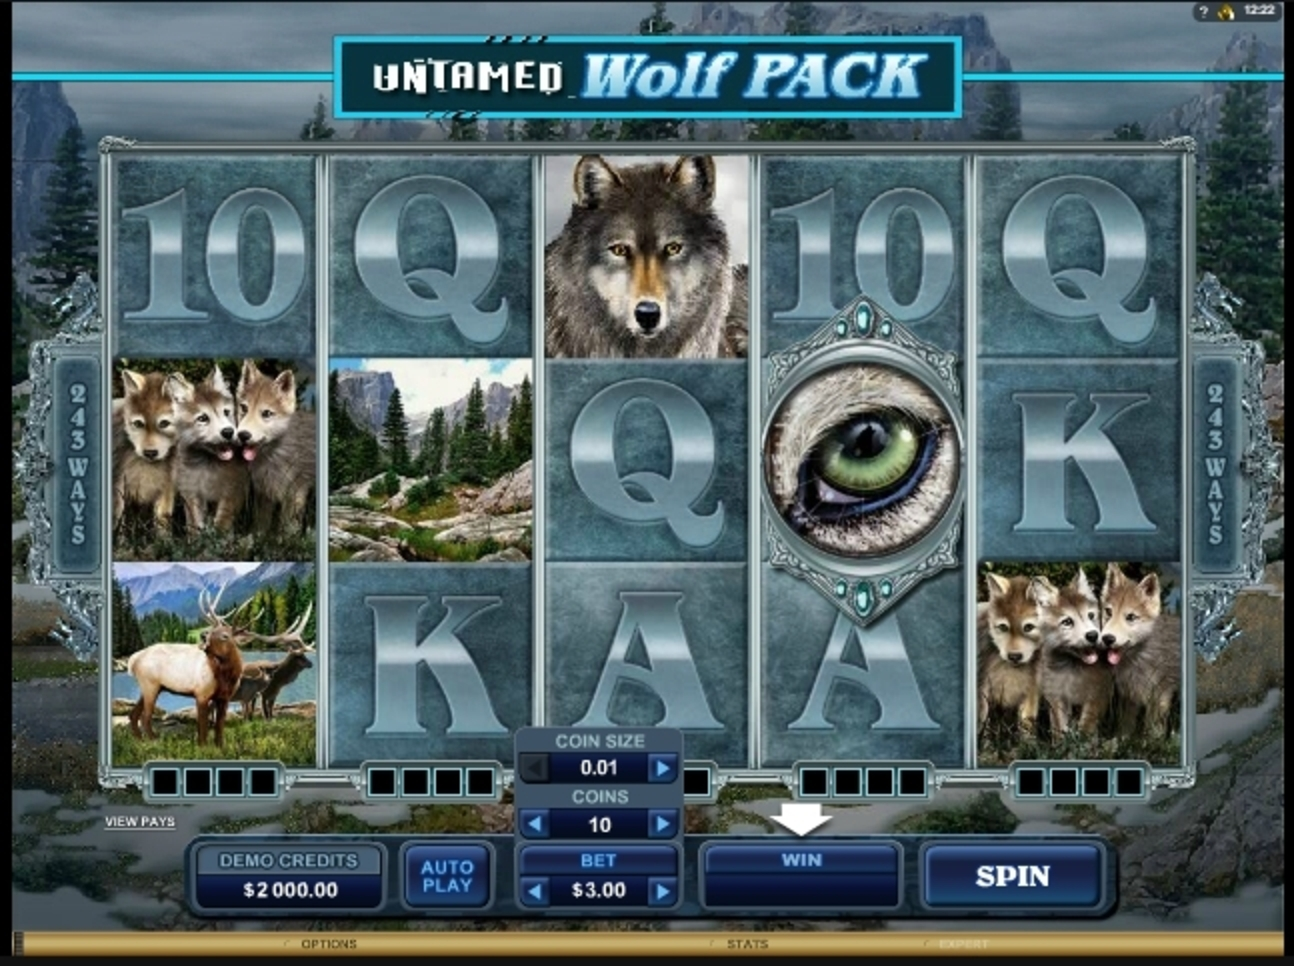 Reels in Untamed Wolf Pack Slot Game by Microgaming